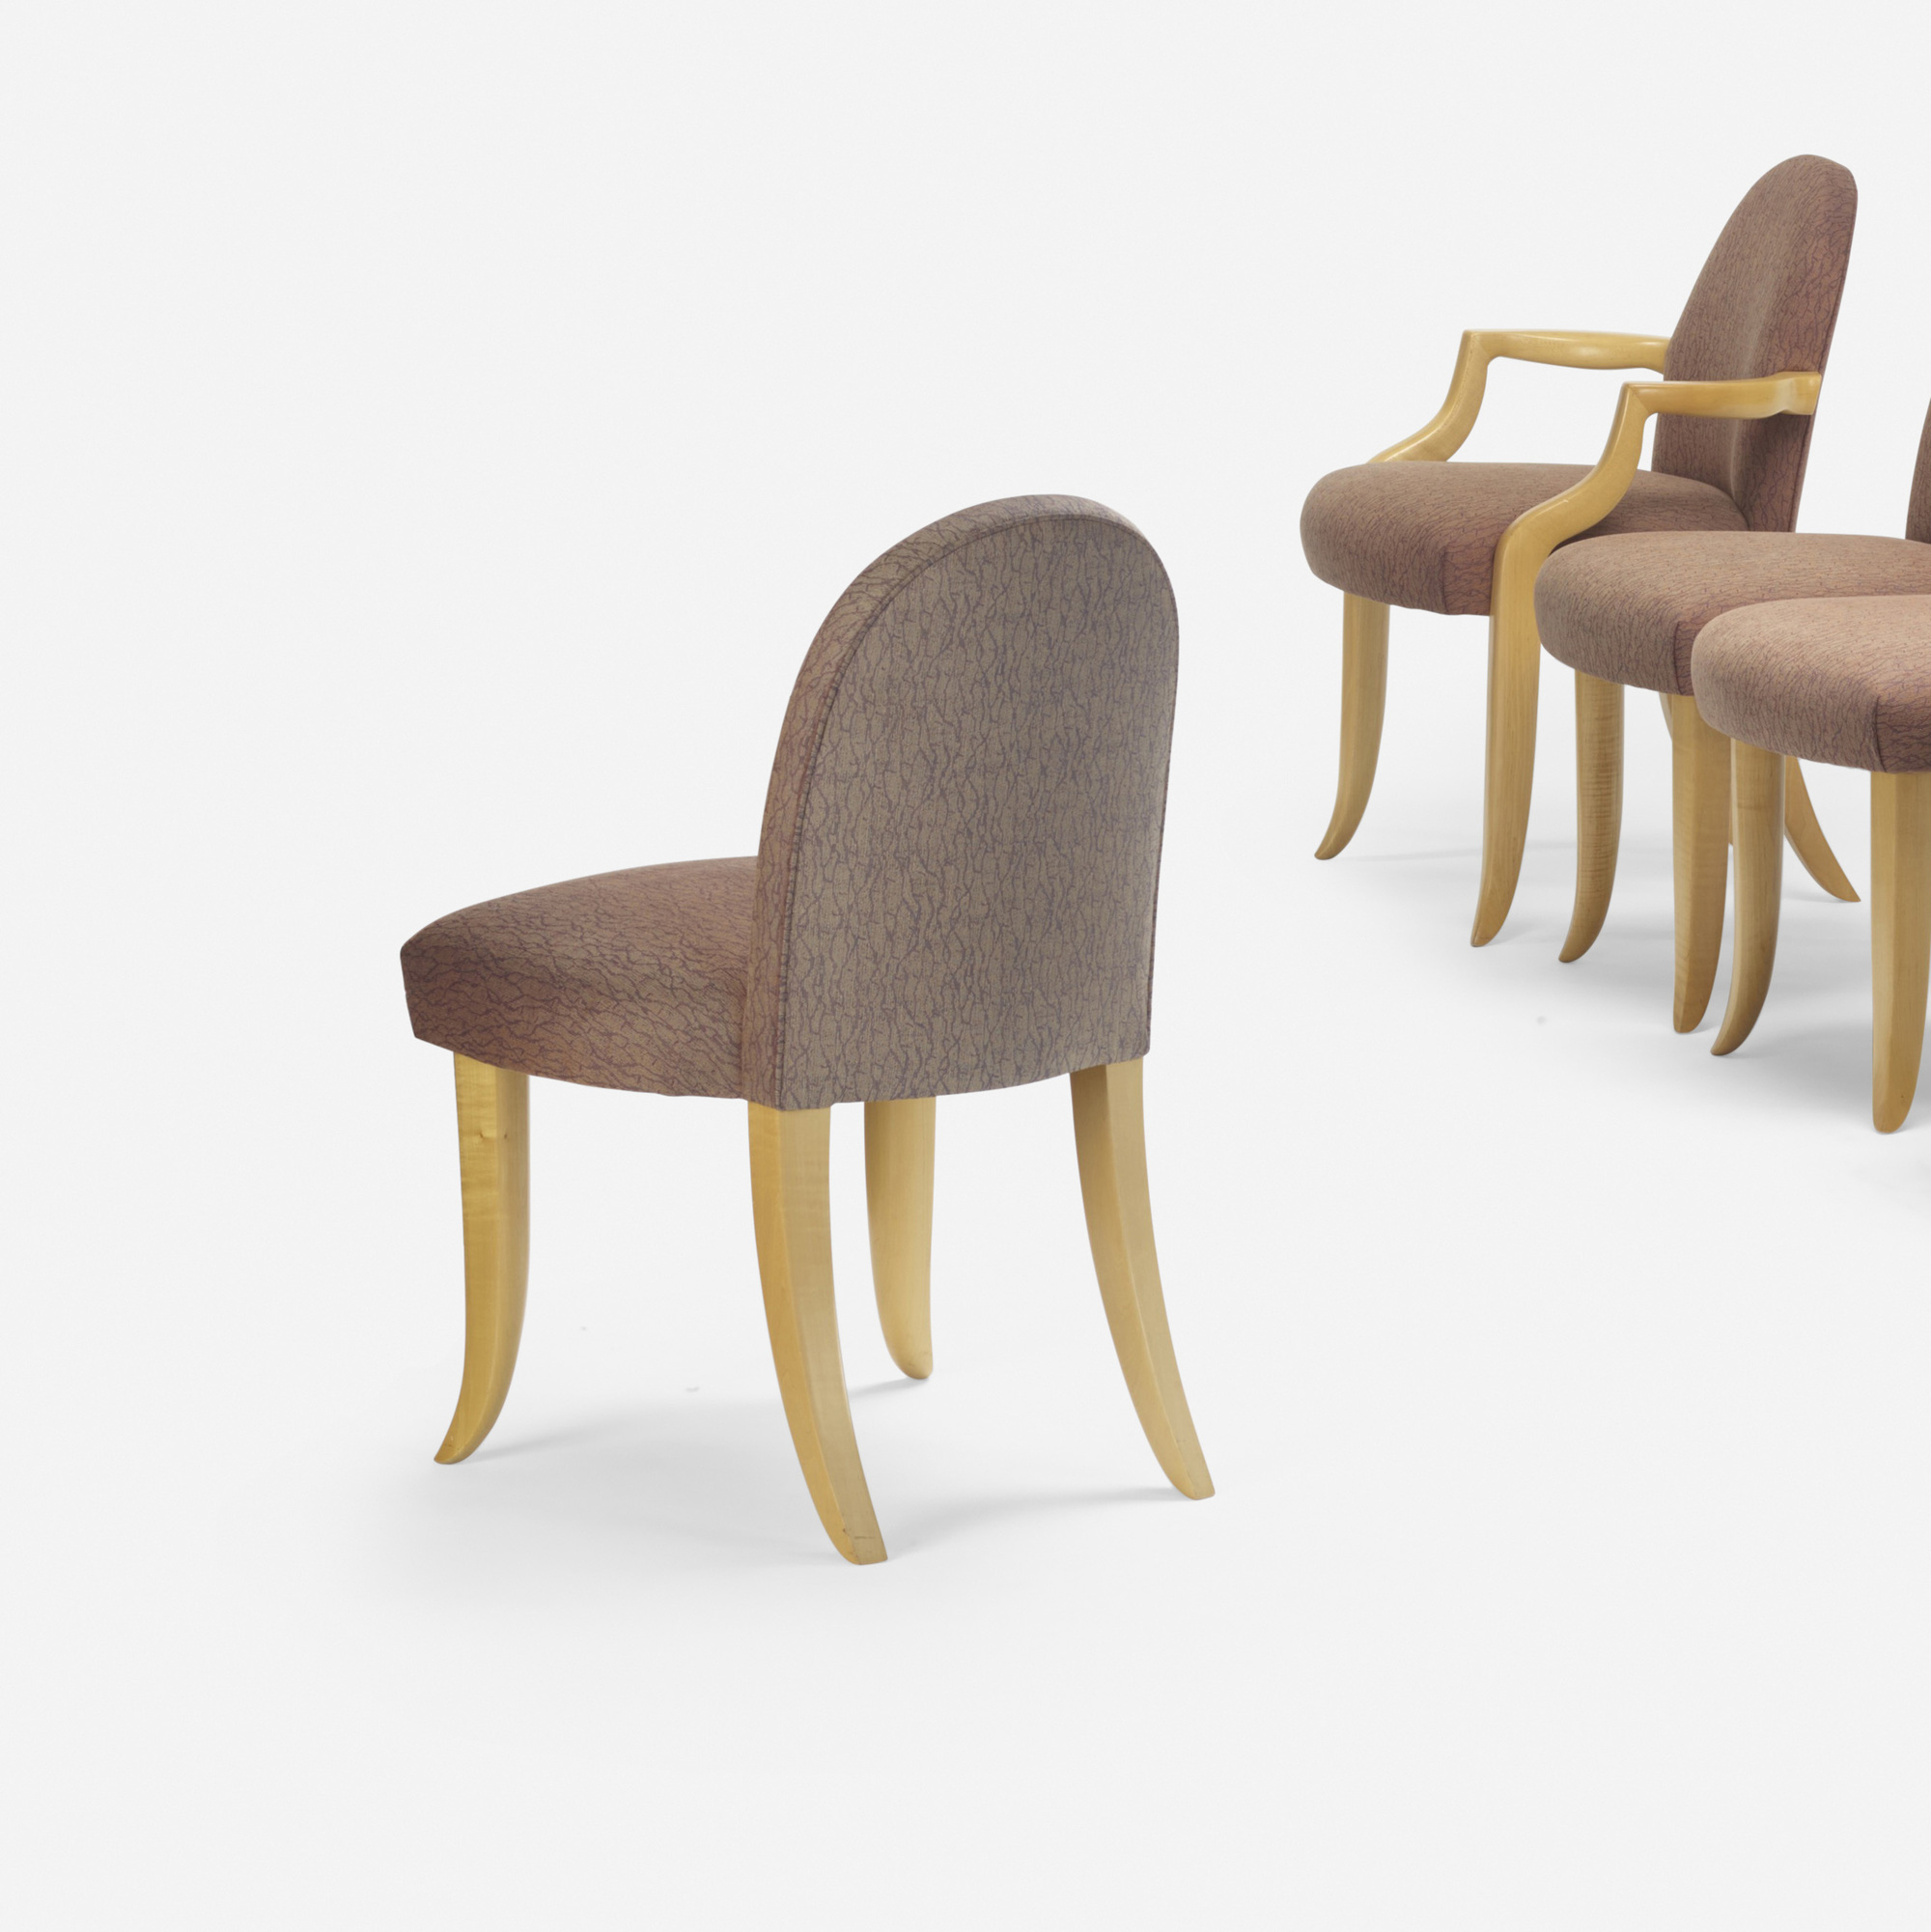 173: Wendell Castle / dining chairs, set of eight (2 of 2)